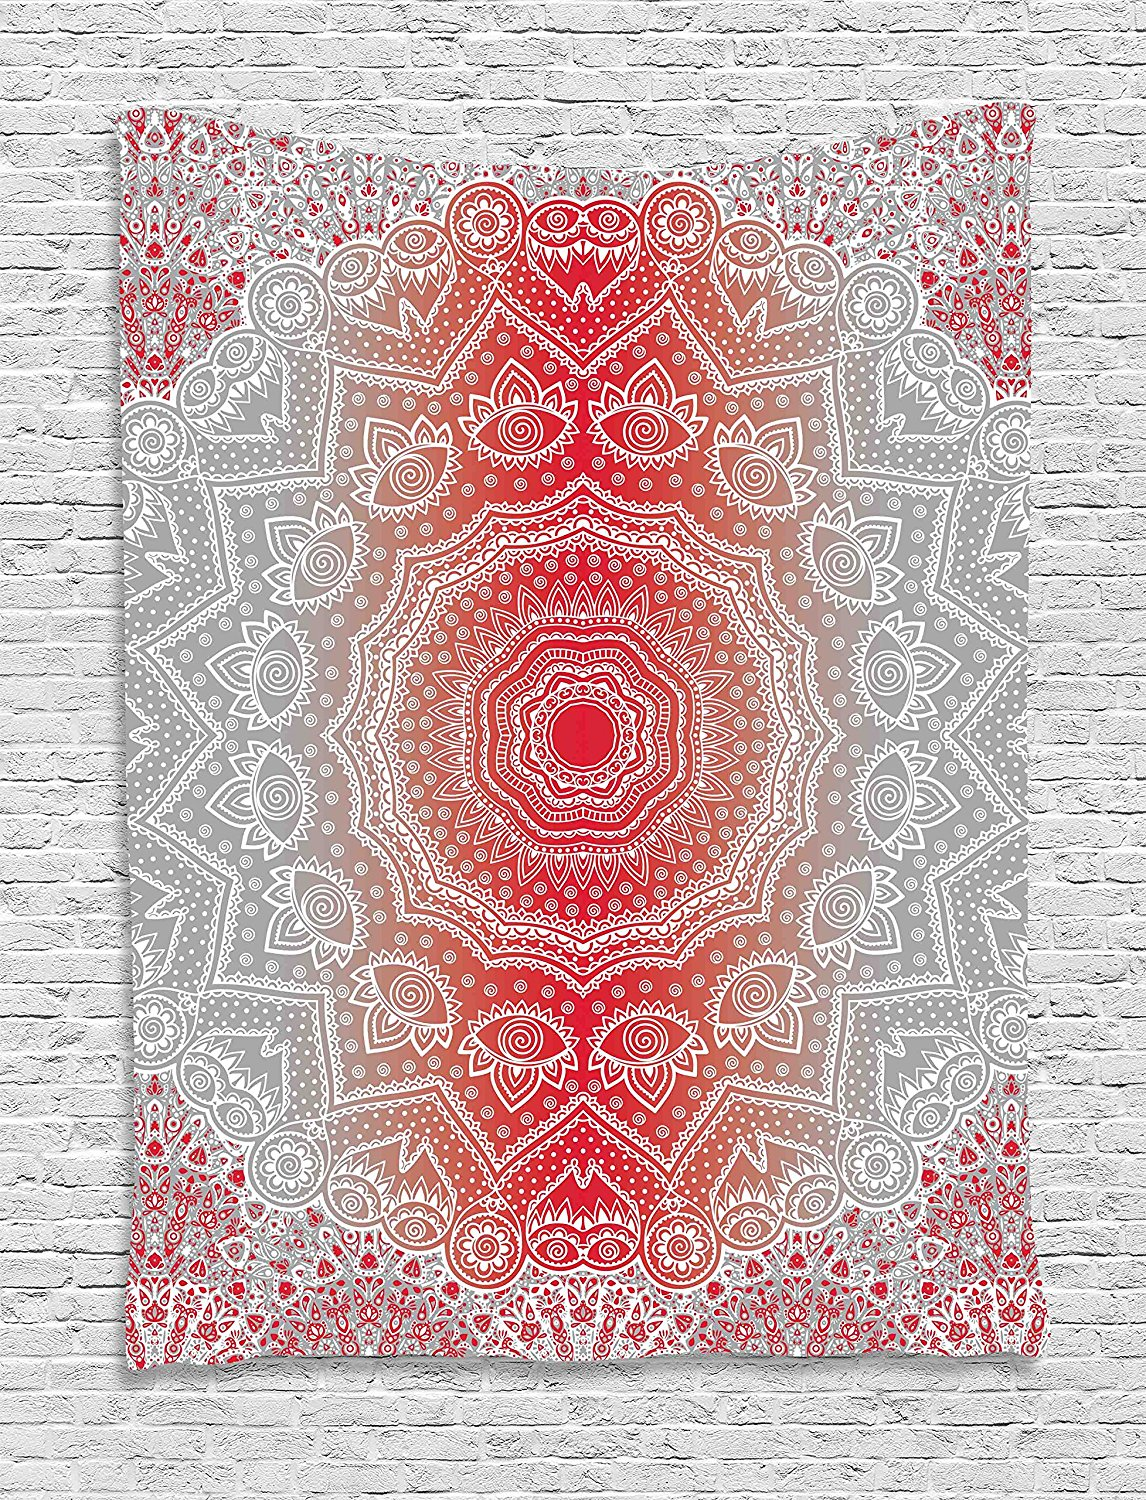 Grey and Red Tapestry, Ethnic Eastern Cultural Folk Deity and Mystic Boho Zen Ombre Mandala Art Design, Wall Hanging for Bedroom